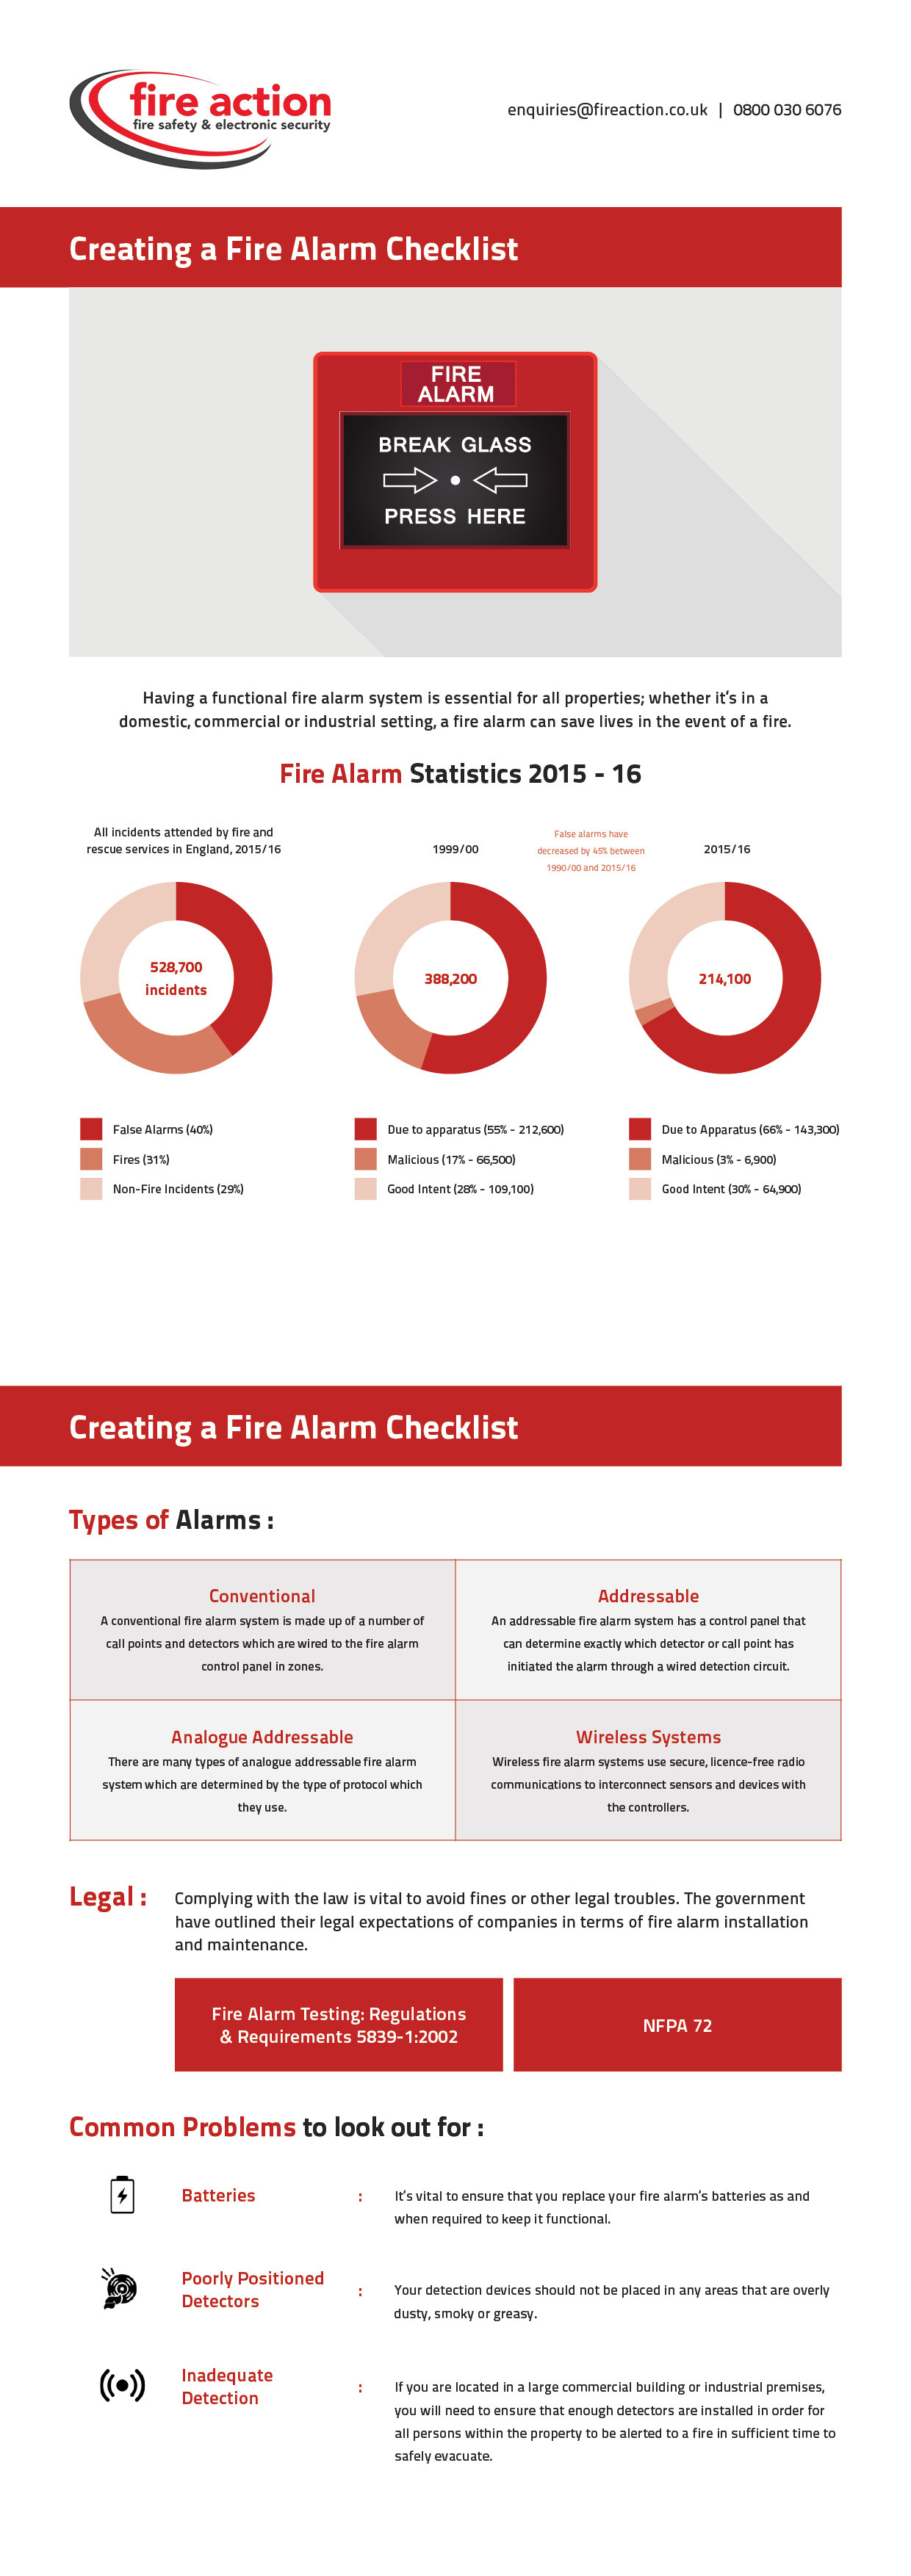 Creating A Fire Alarm Checklist Infographic Fire